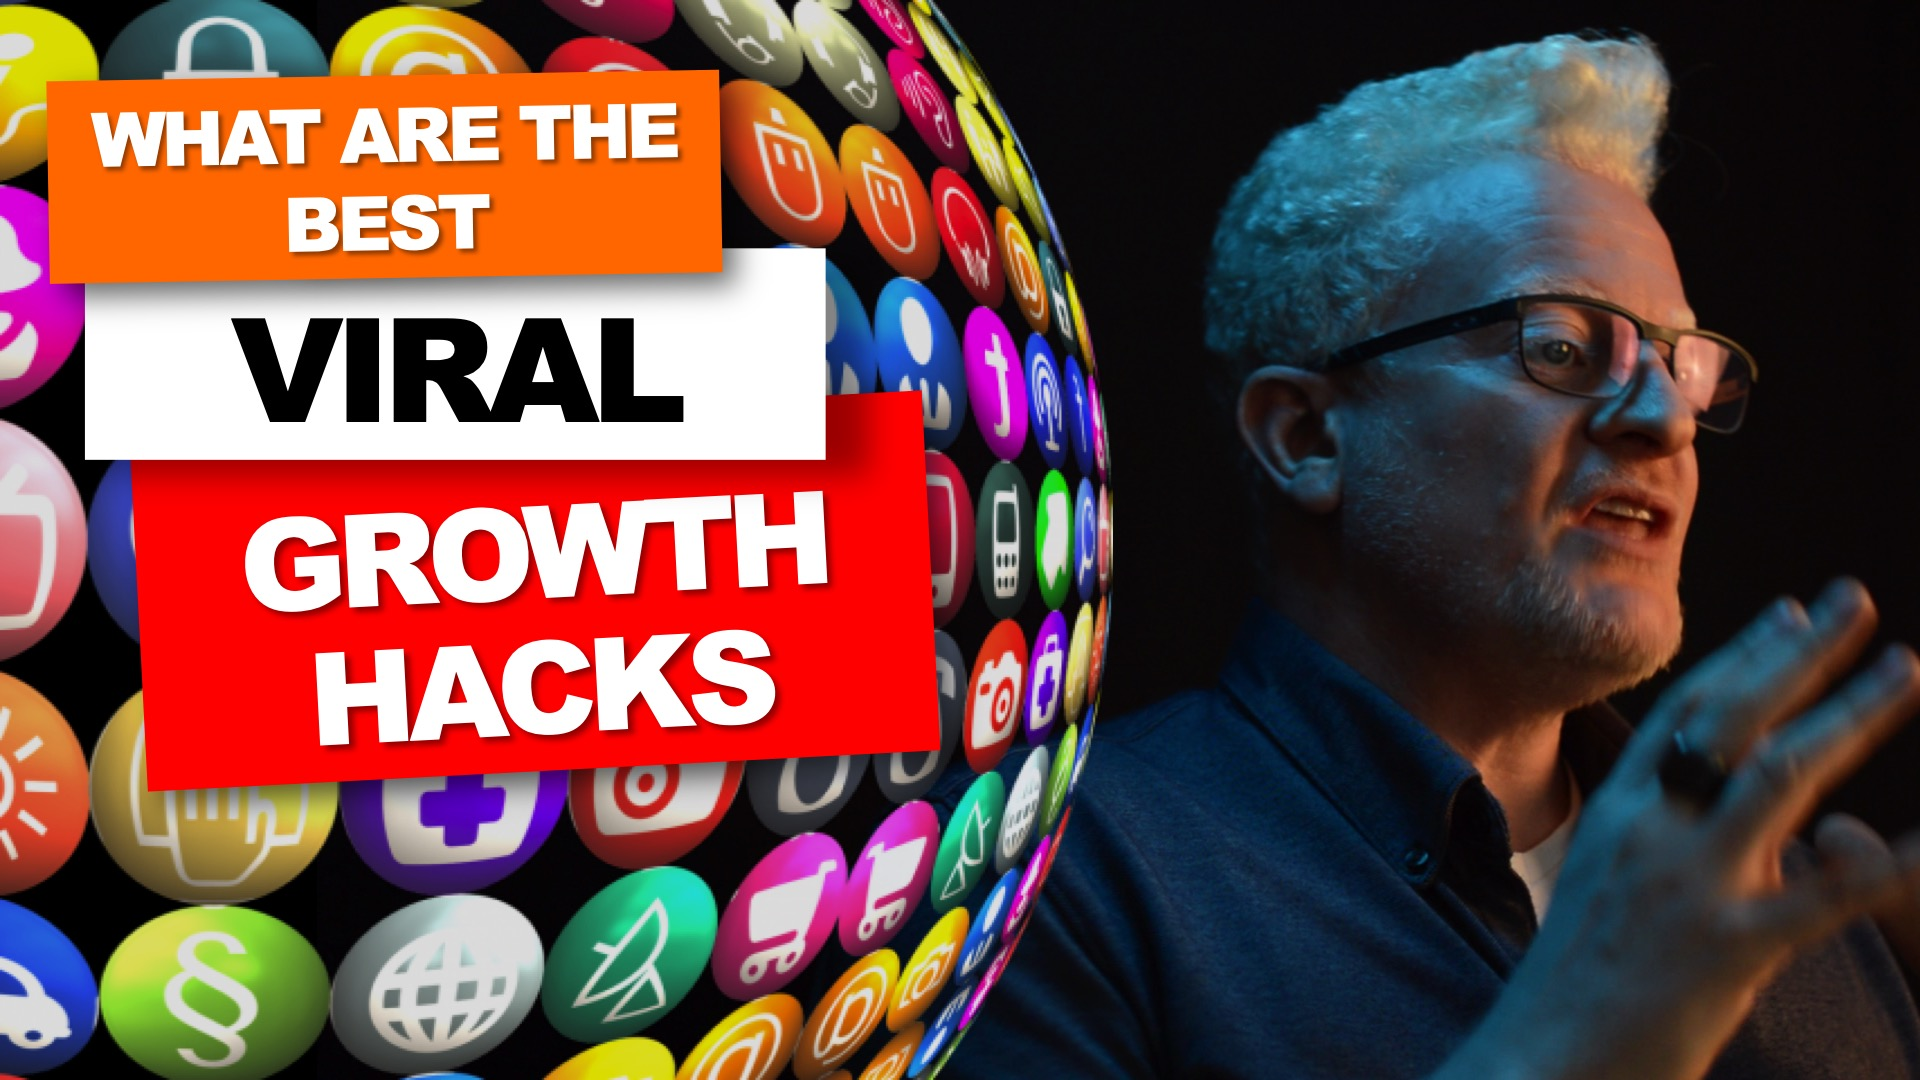 What are the best viral growth hacks?